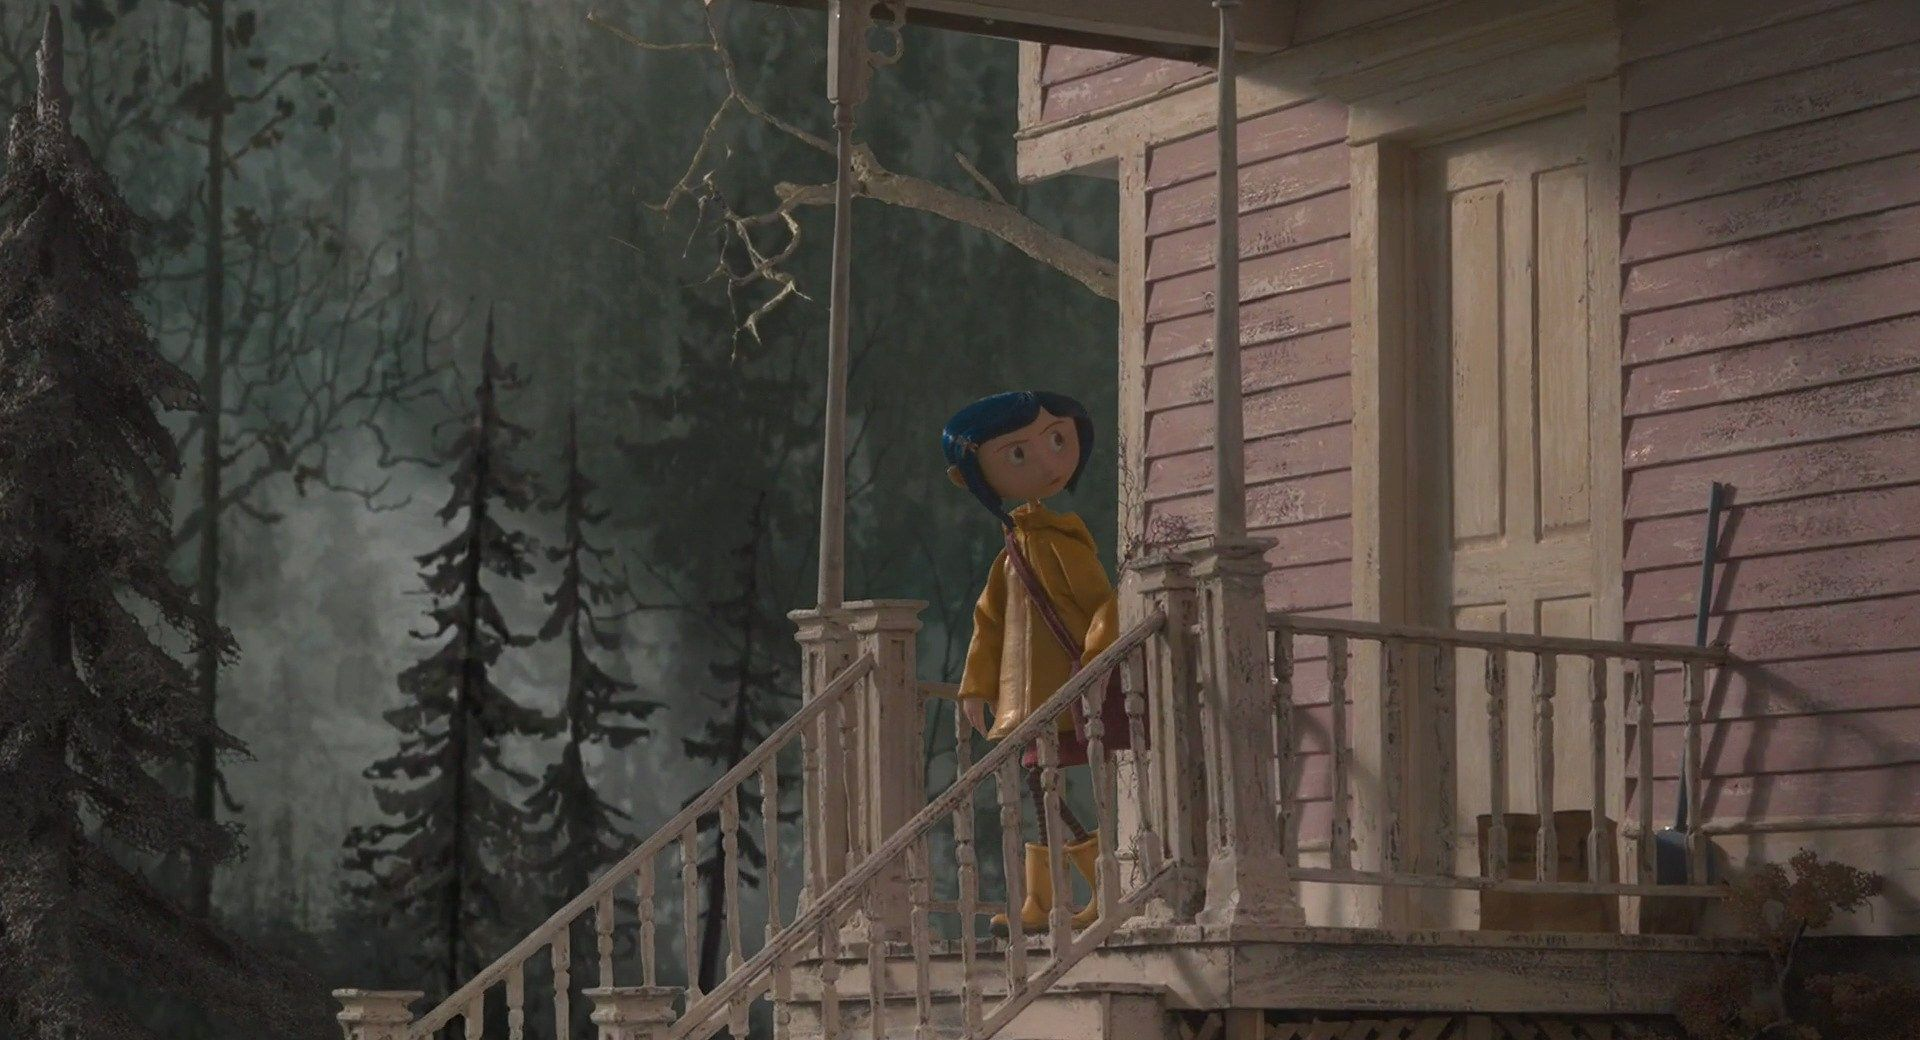 Pin By Ryan Cohen On Film Color Composition Coraline Coraline Jones Forest Backdrops